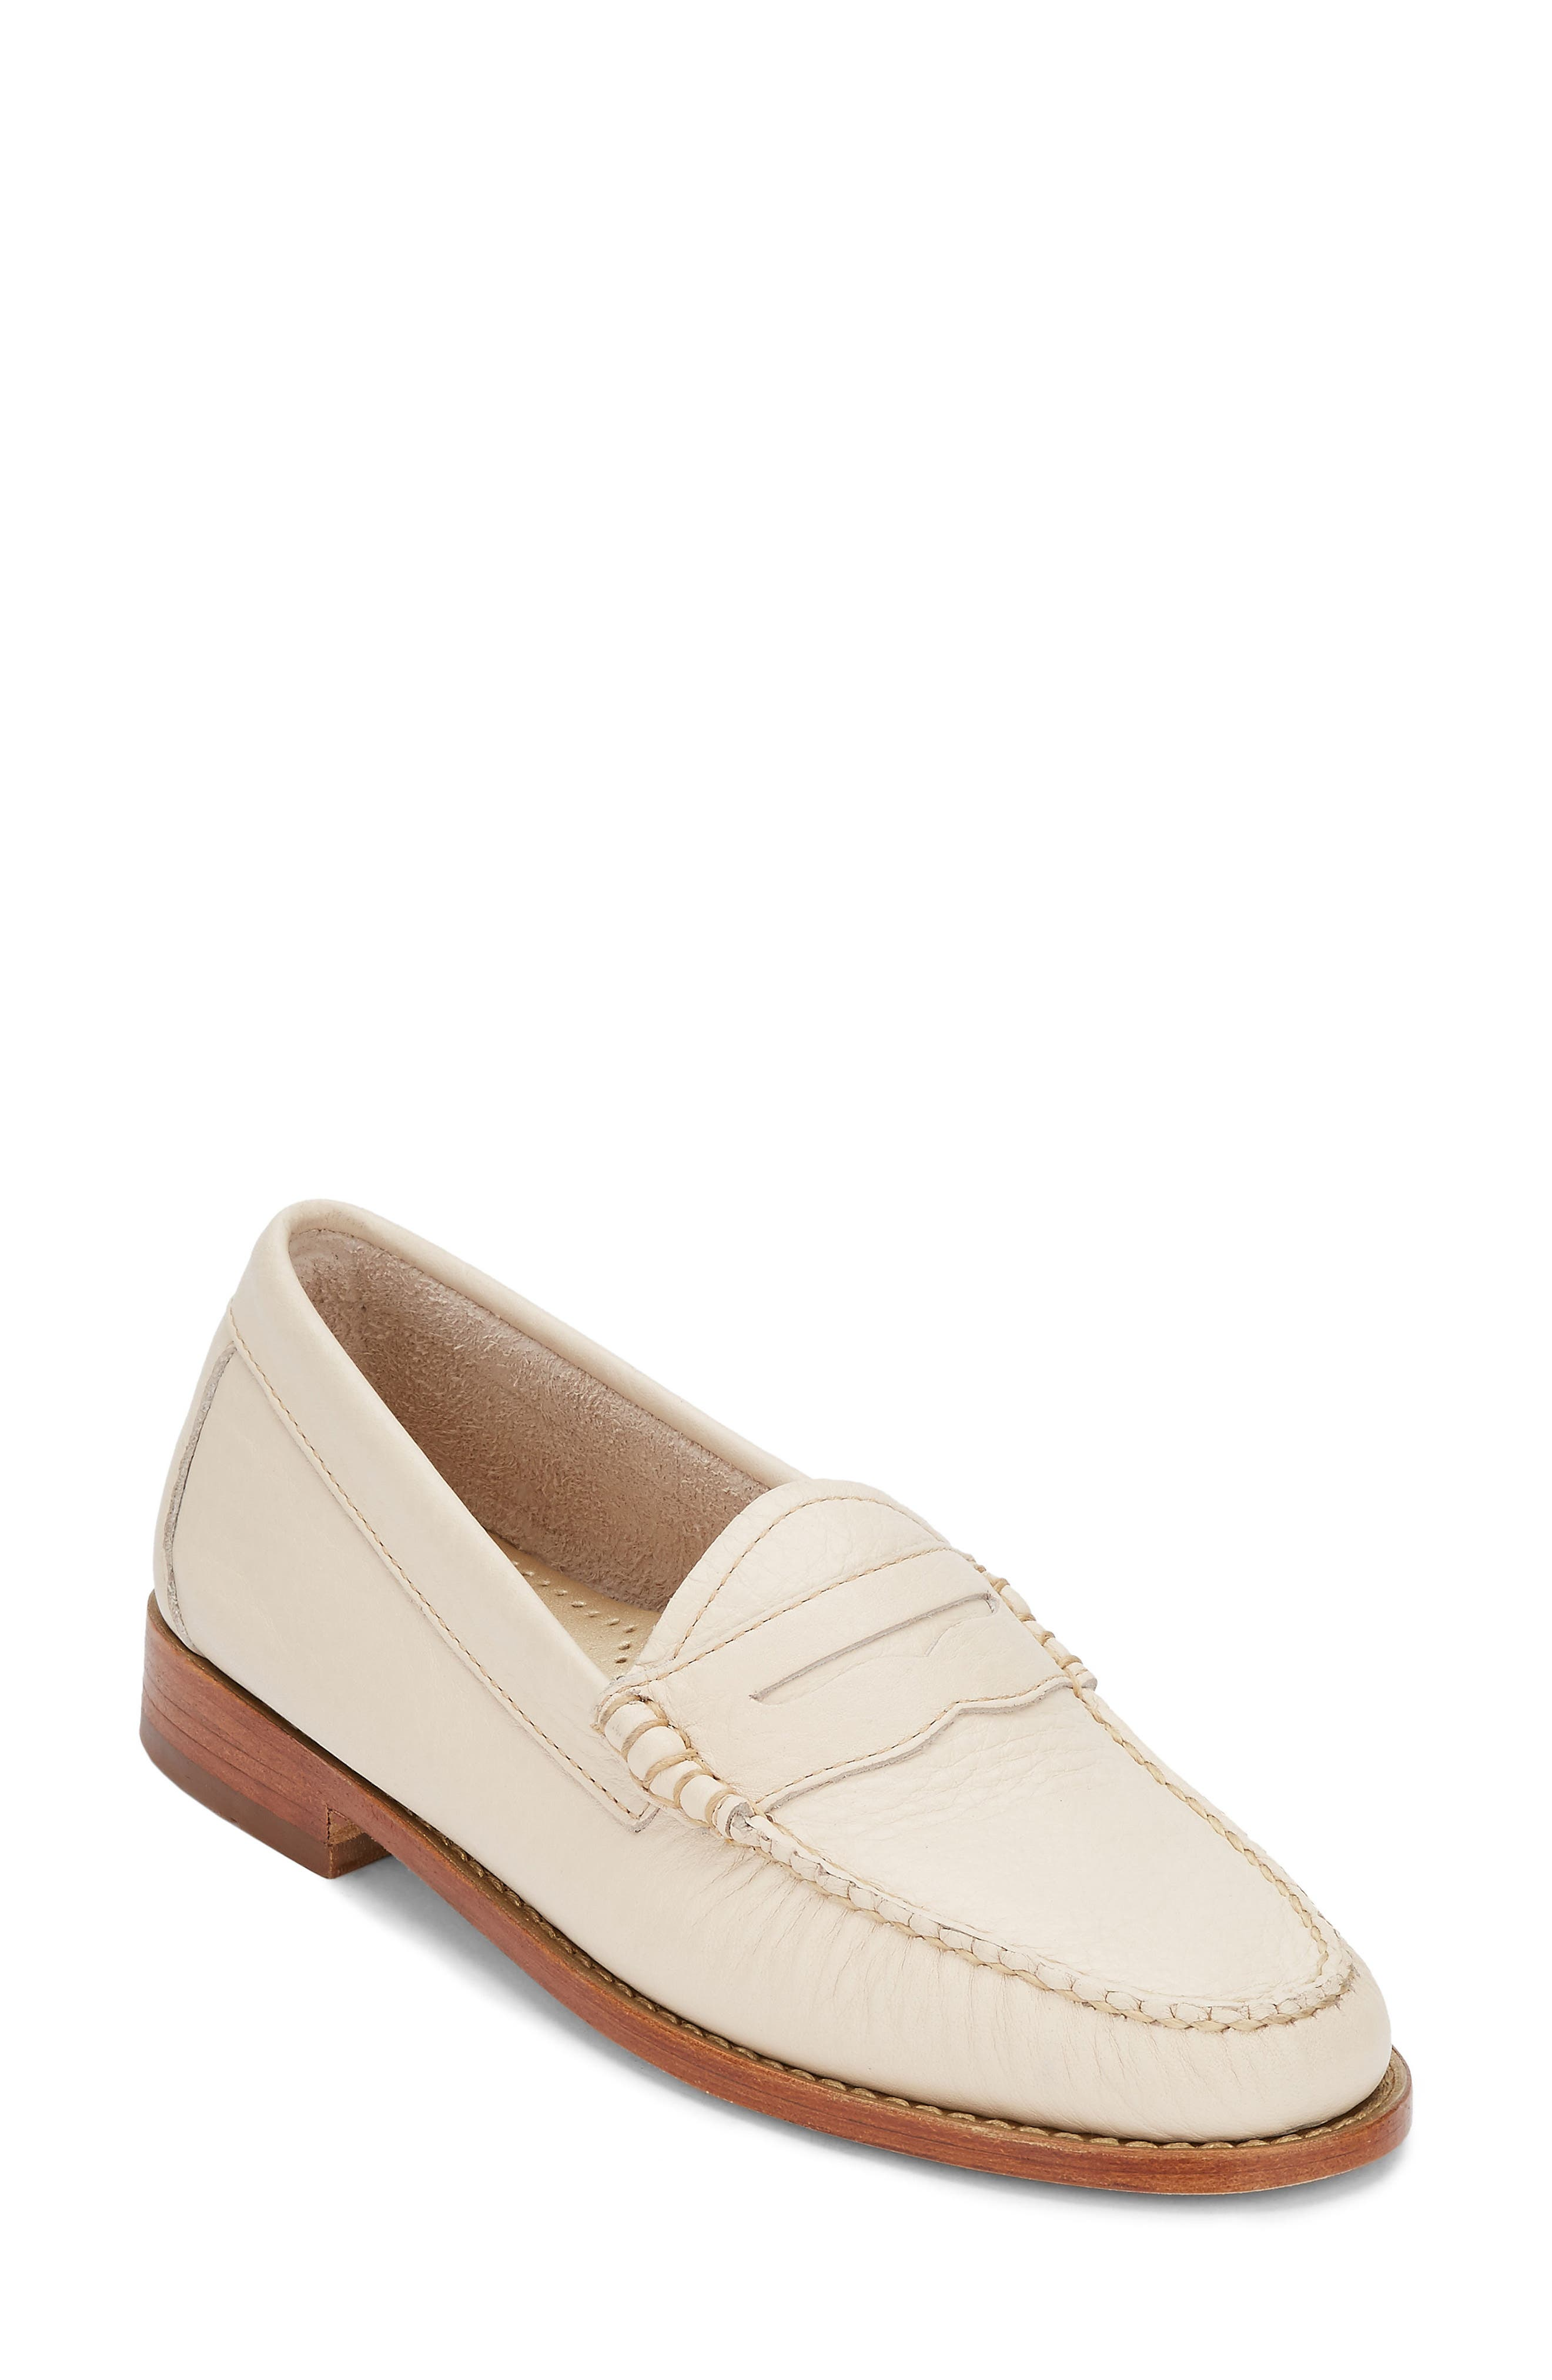 'Whitney' Loafer,                             Main thumbnail 31, color,